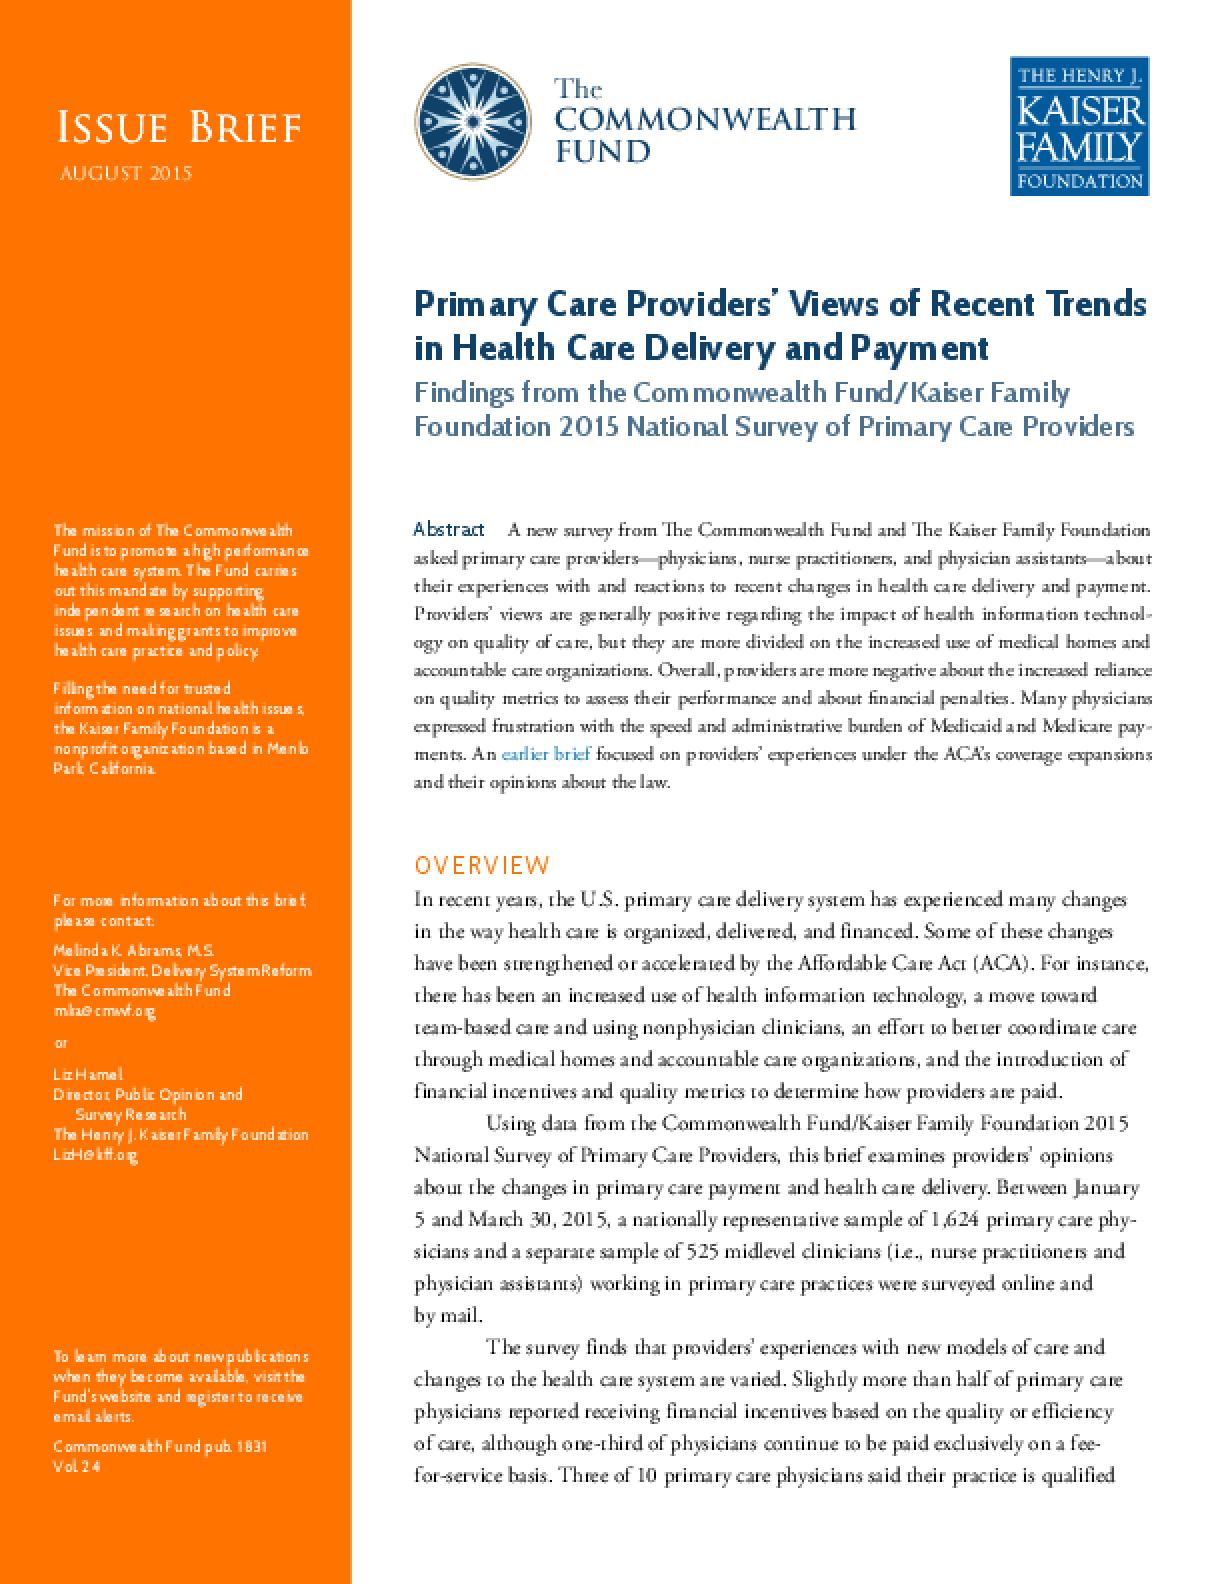 Primary Care Providers' Views of Recent Trends in Health Care Delivery and Payment:Findings from the Commonwealth Fund/Kaiser Family Foundation 2015 National Survey of Primary Care Providers